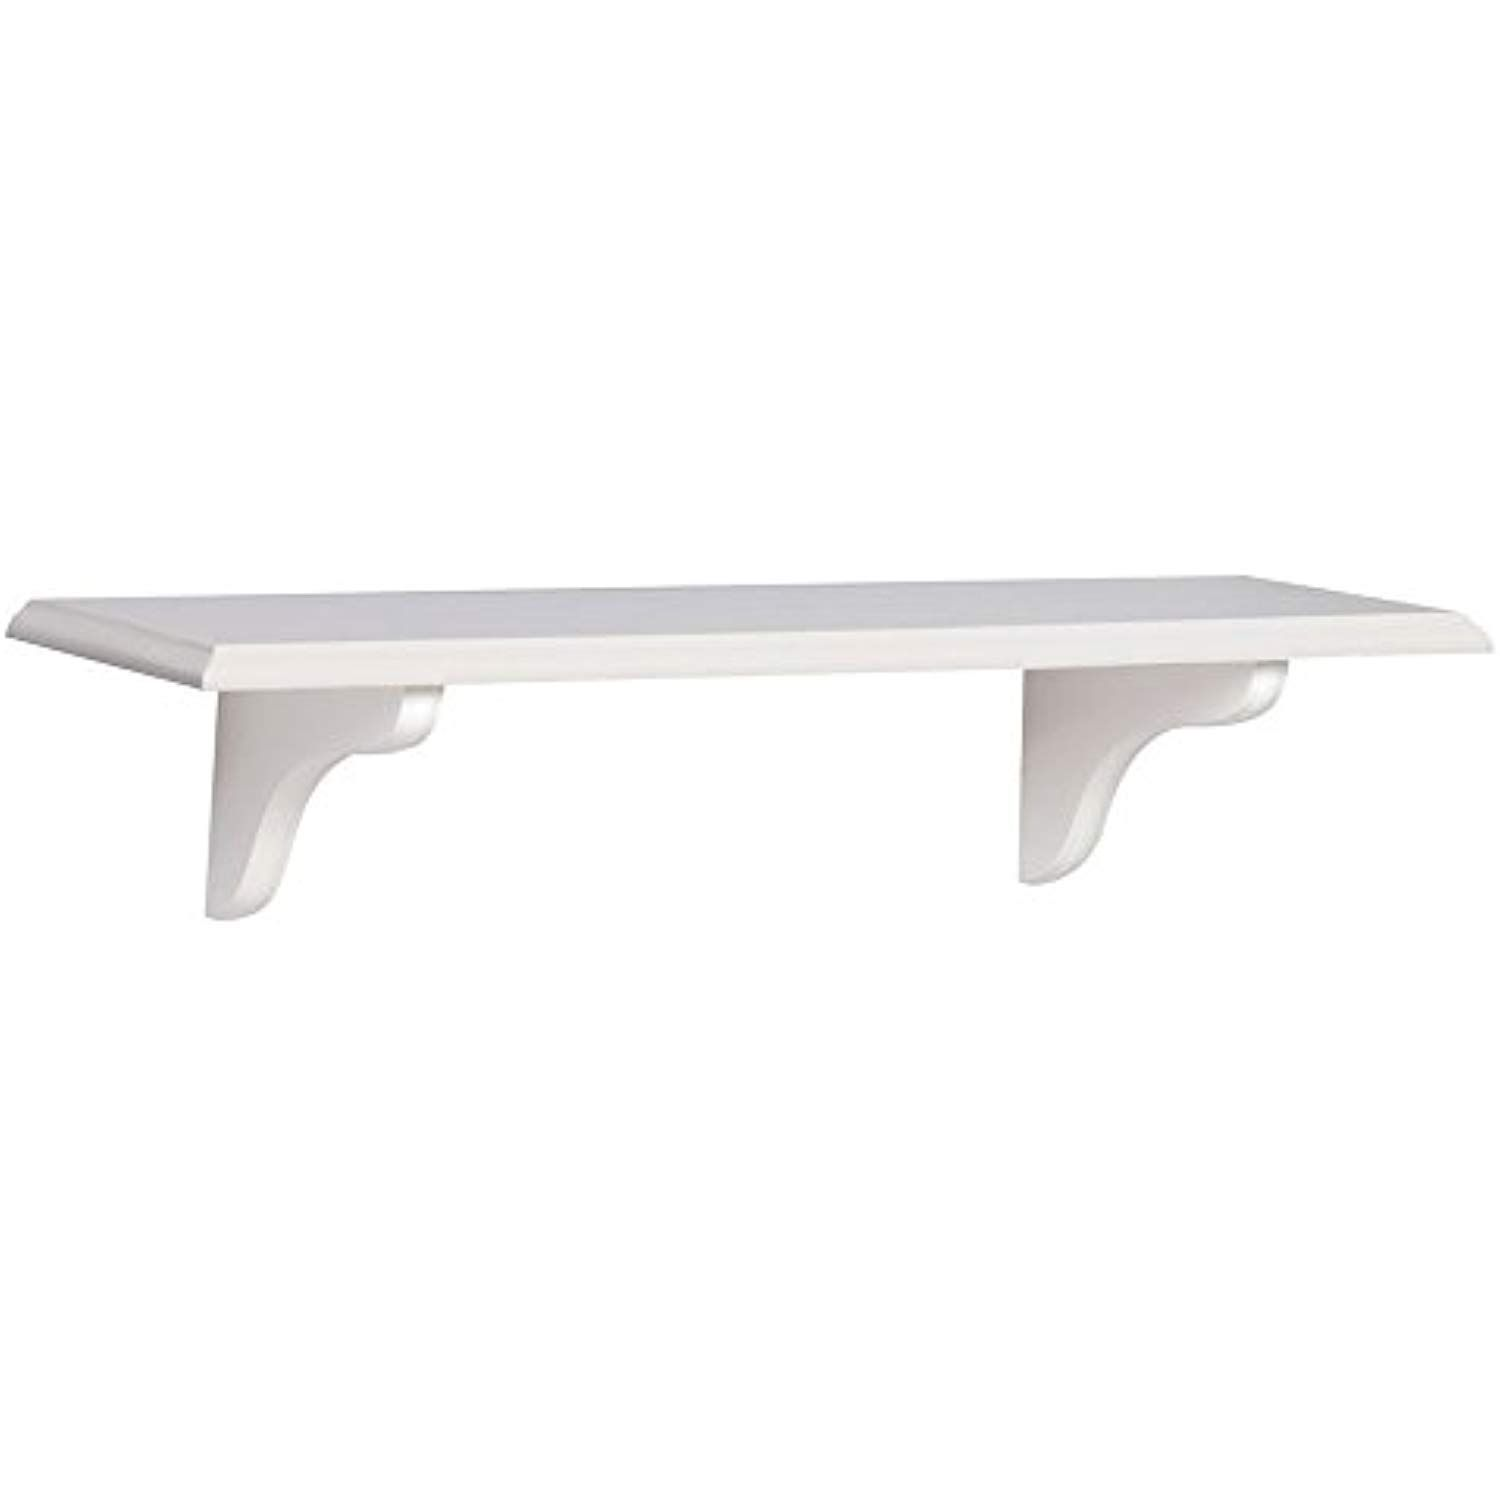 john sterling shelf made wood kit white inch floating continue the product link this affiliate wooden kitchen island table counter support brackets wall mount decorative accent